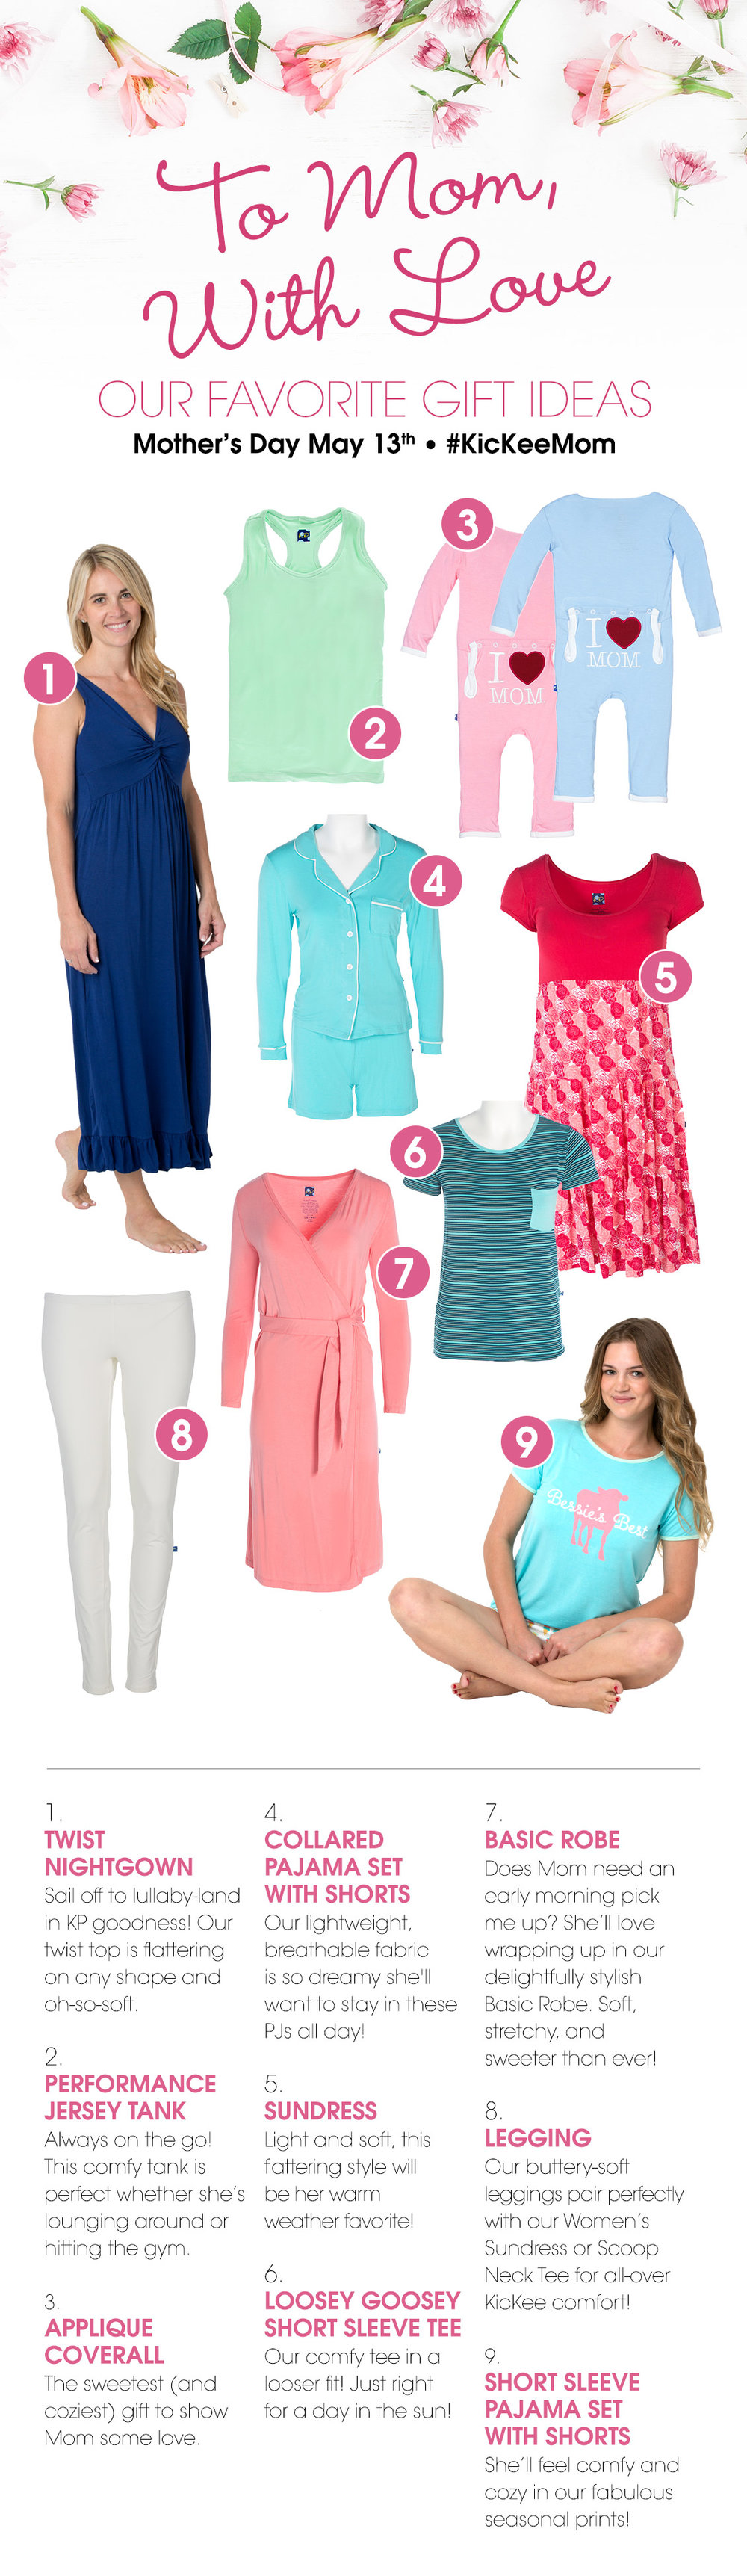 1.  Twist Nightgown    2.  Performance Jersey Tank     3.  Applique Coverall     4.  Collard Pajama Set with Shorts      5.  Sundress     6.  Loosey Goosey Short Sleeve Tee      7.  Basic Robe      8.  Legging      9.  Short Sleeve Pajama Set with Shorts